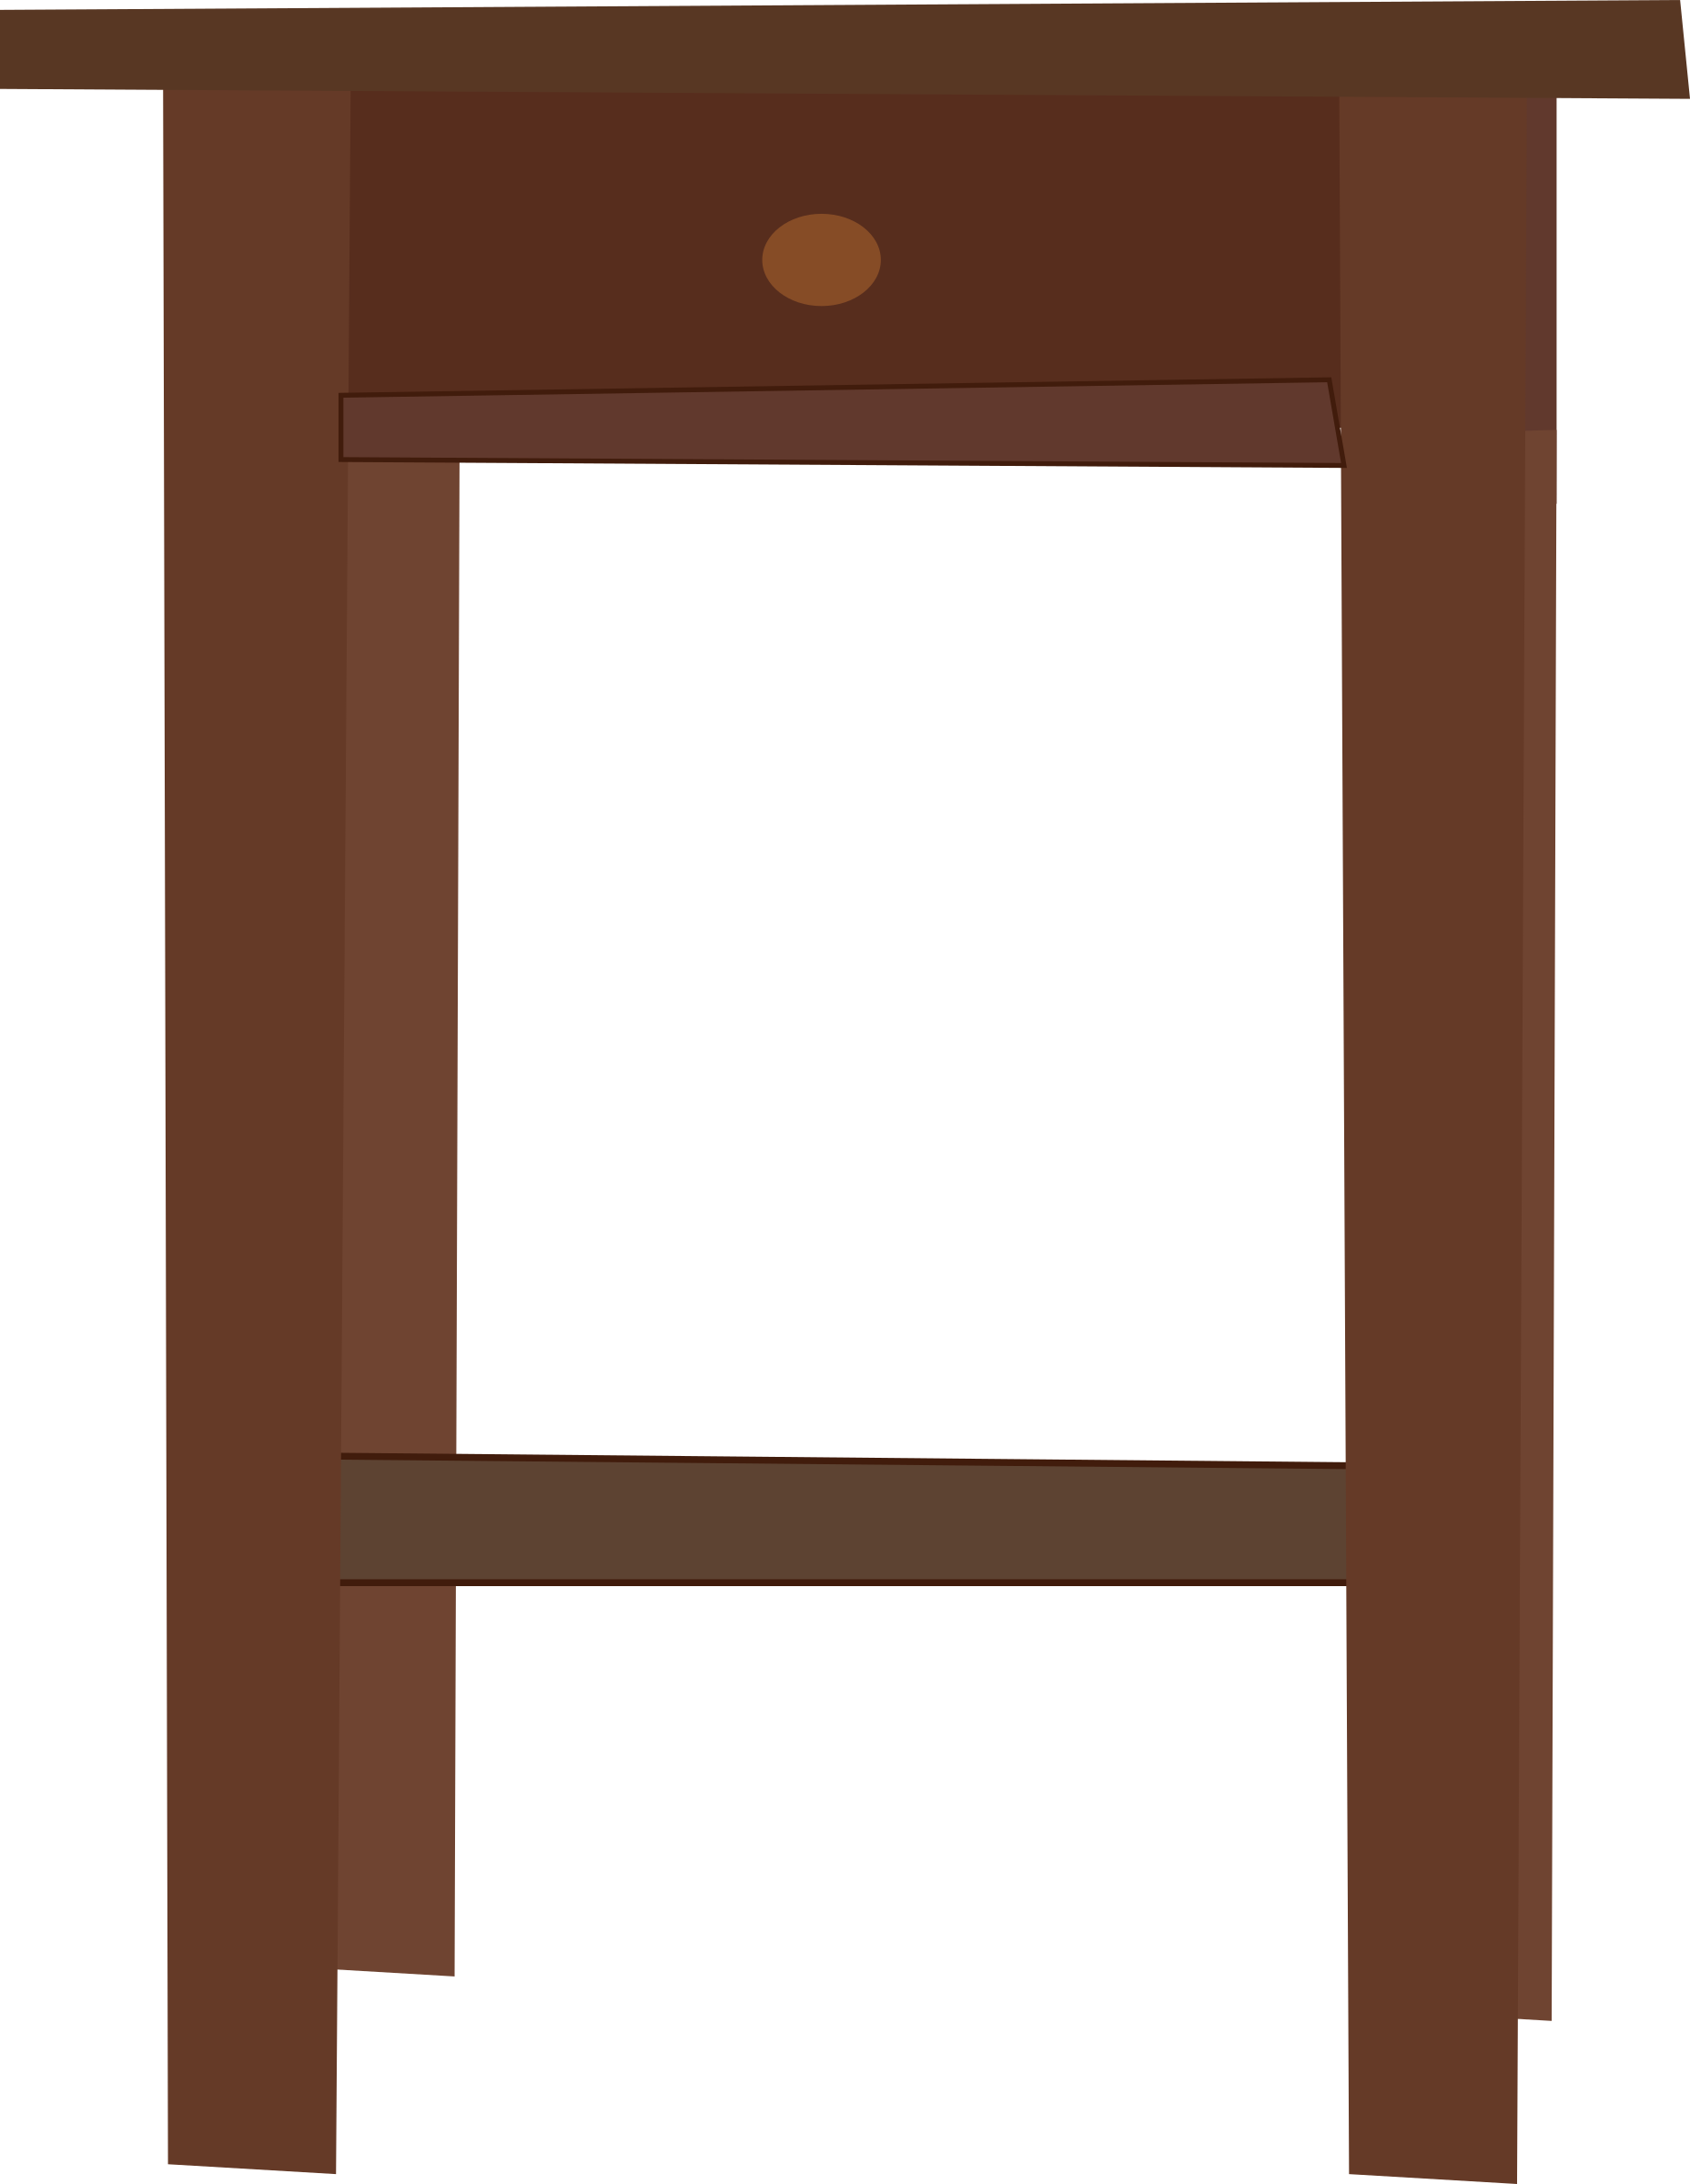 Endtable big image png. Furniture clipart night stand